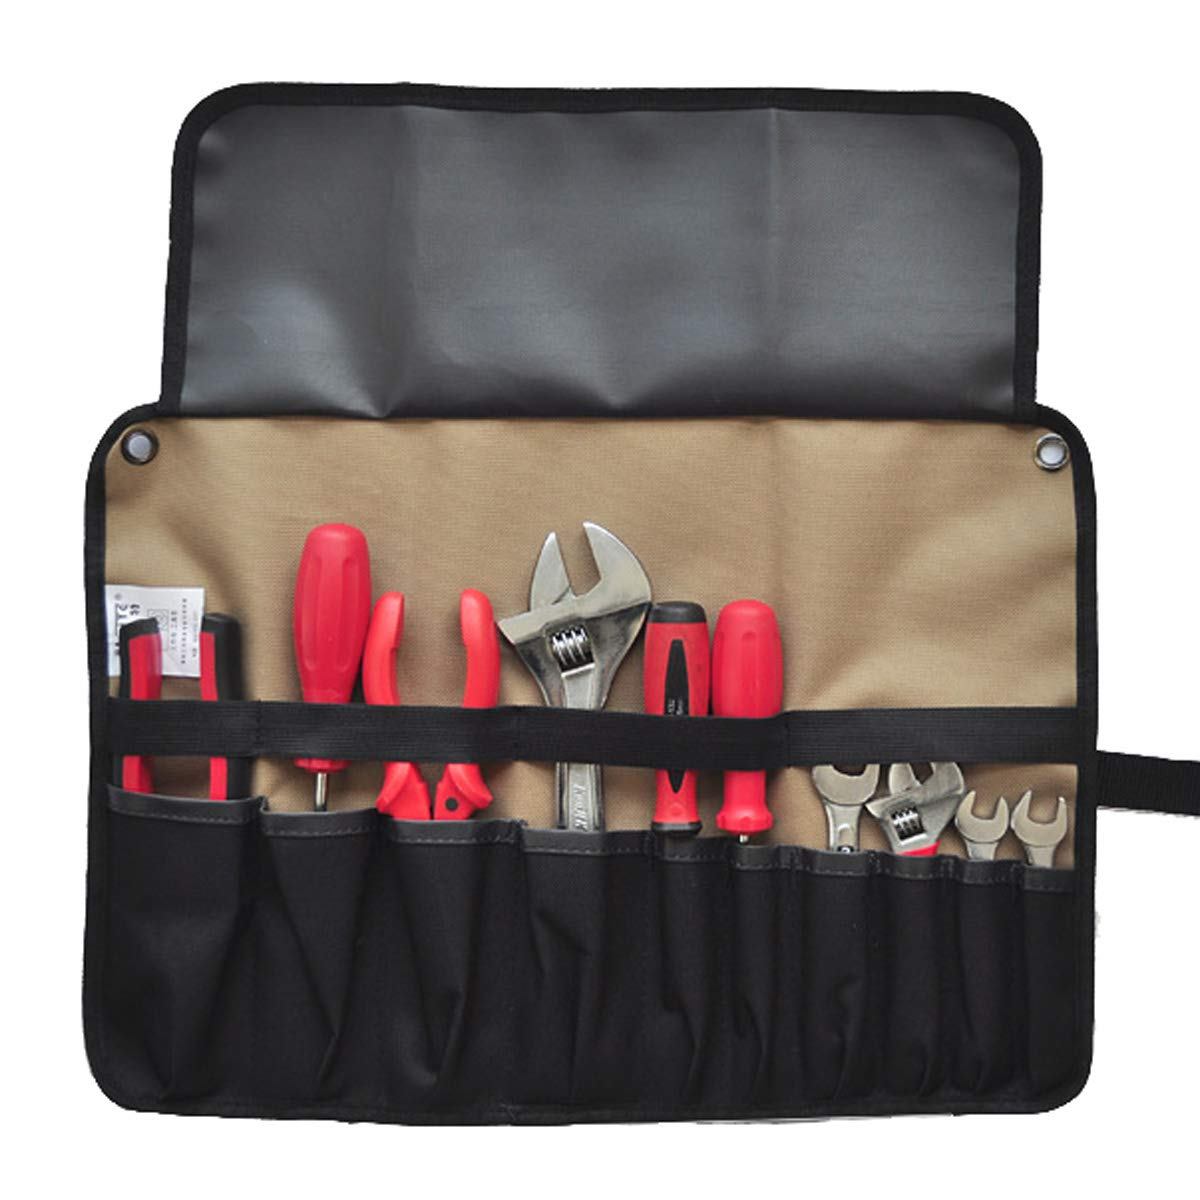 ThinkTop Chef Knife Roll Bag Case 10 Slots,Portable Kitchen Tool Bag Case Easily Carried Knife Pouch Box Organizer Storage